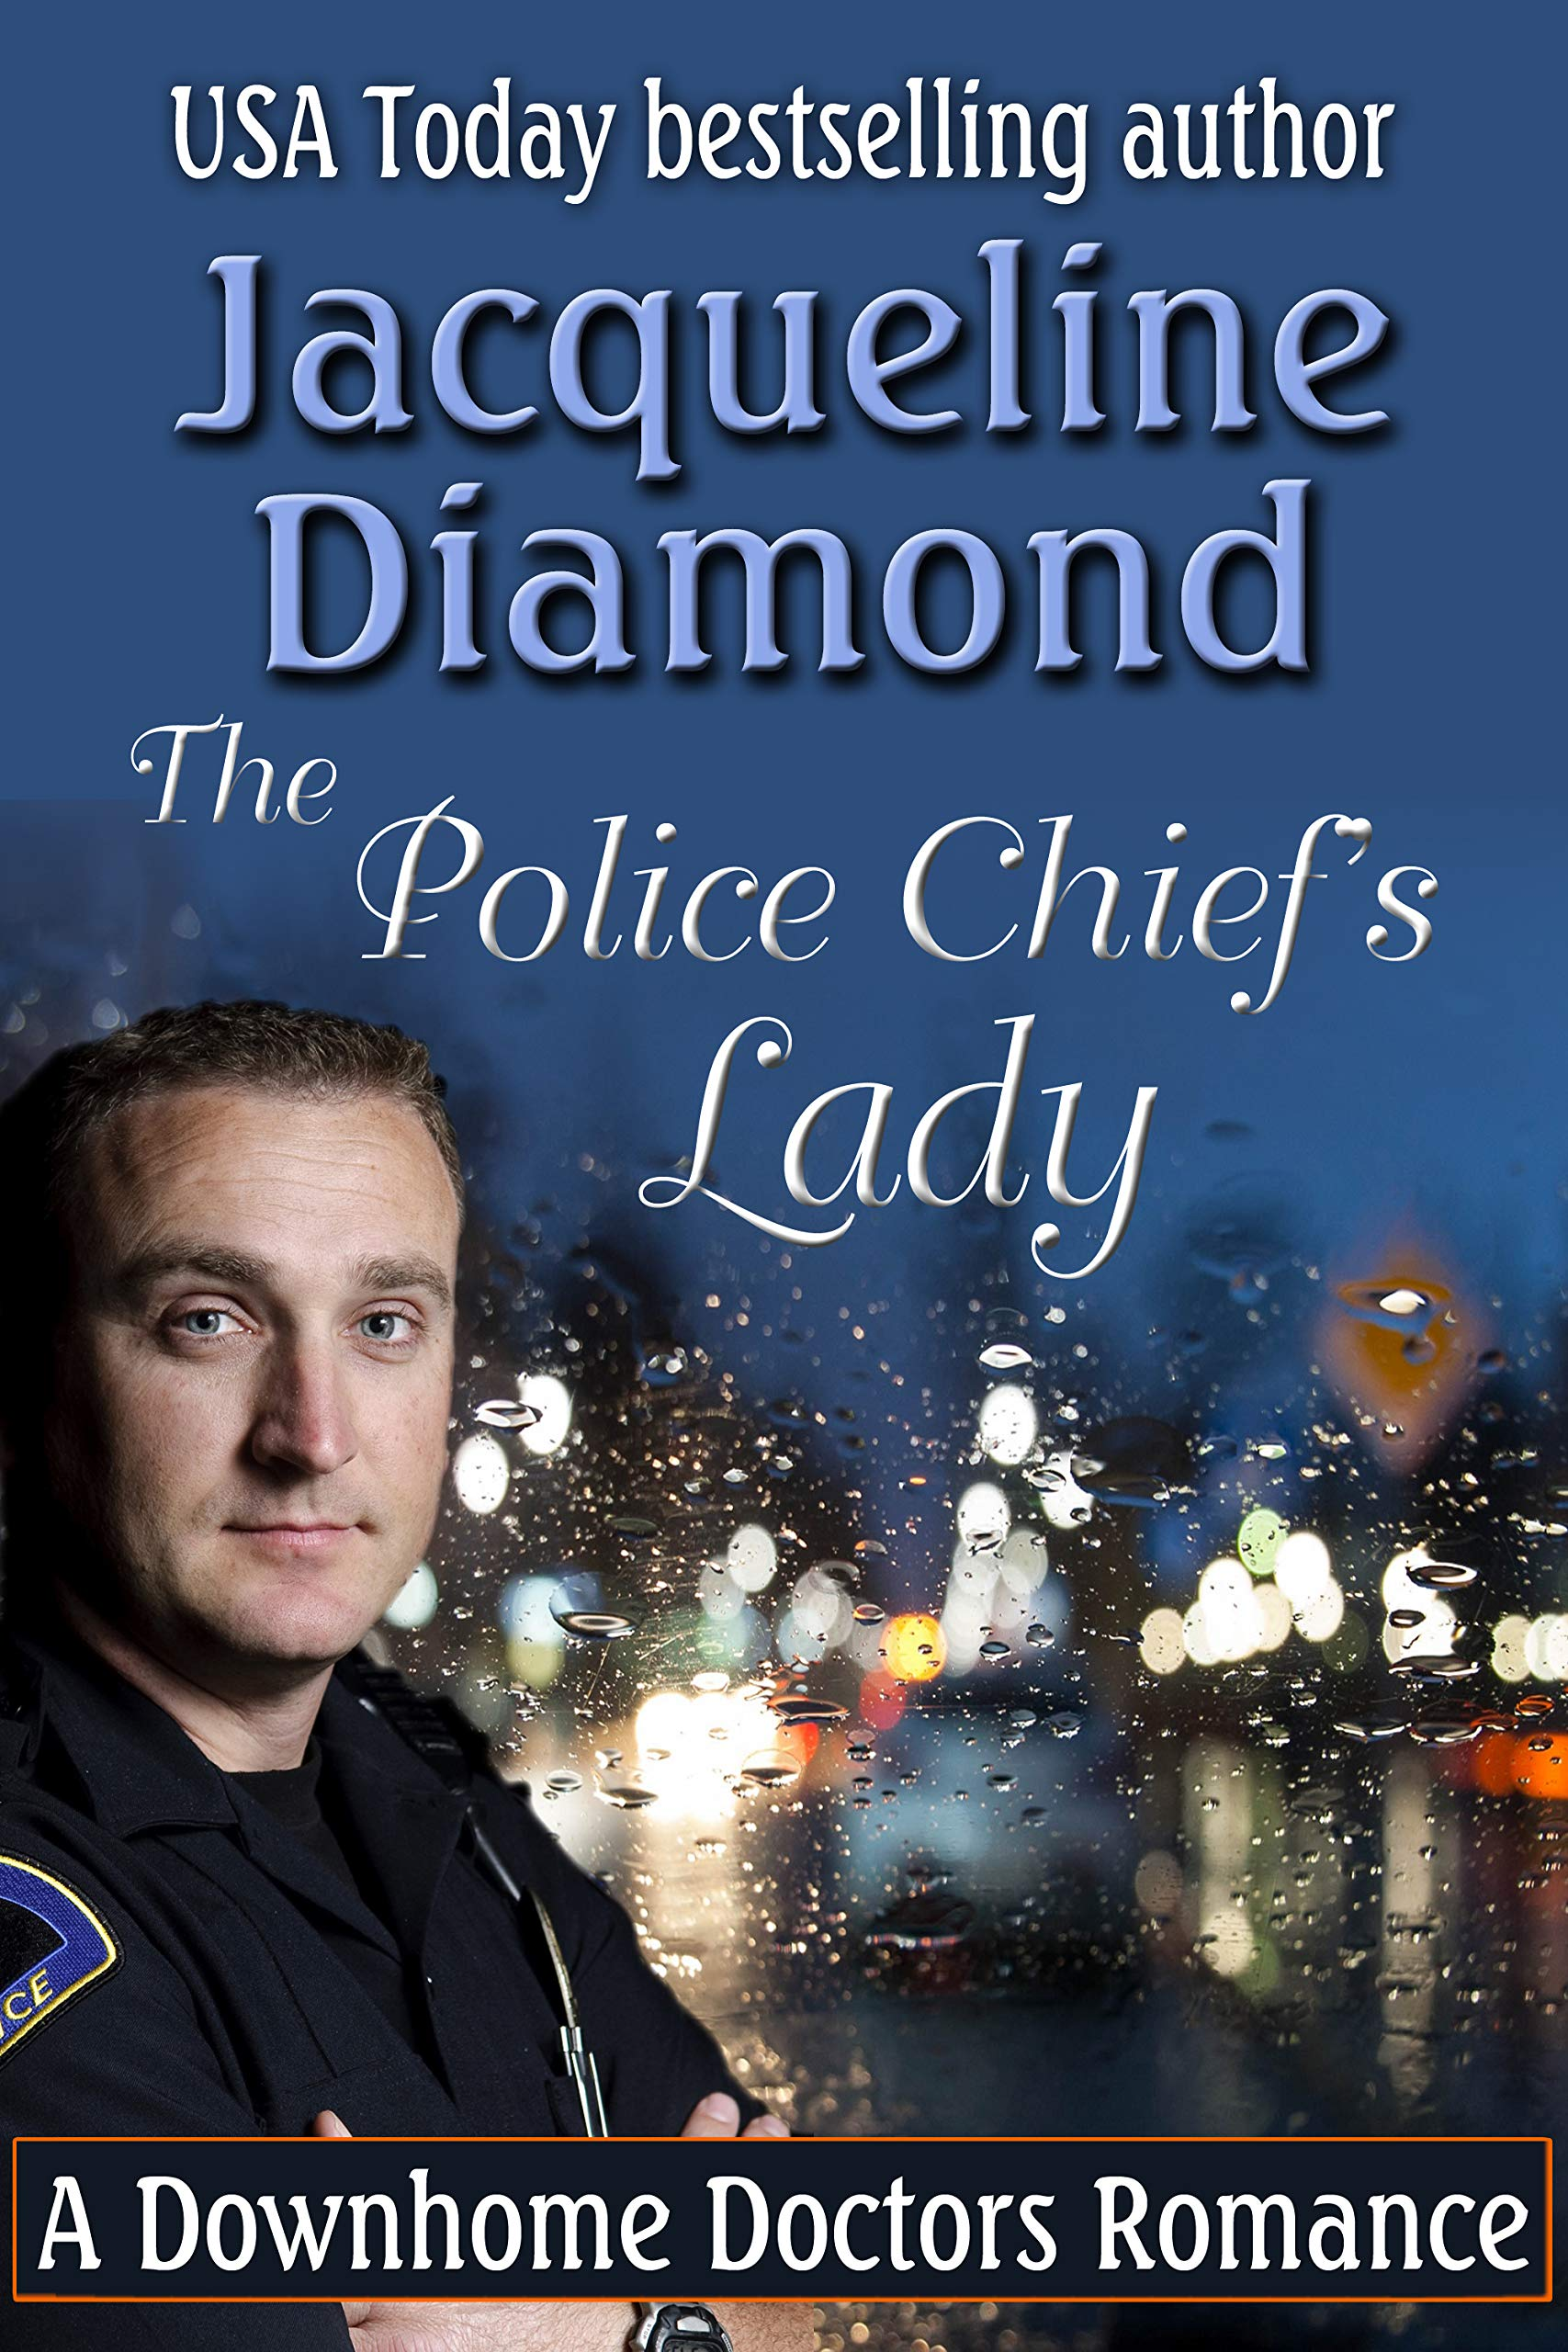 The Police Chief's Lady: A Downhome Doctors Romance (Downhome Doctors Medical Romances Book 1)